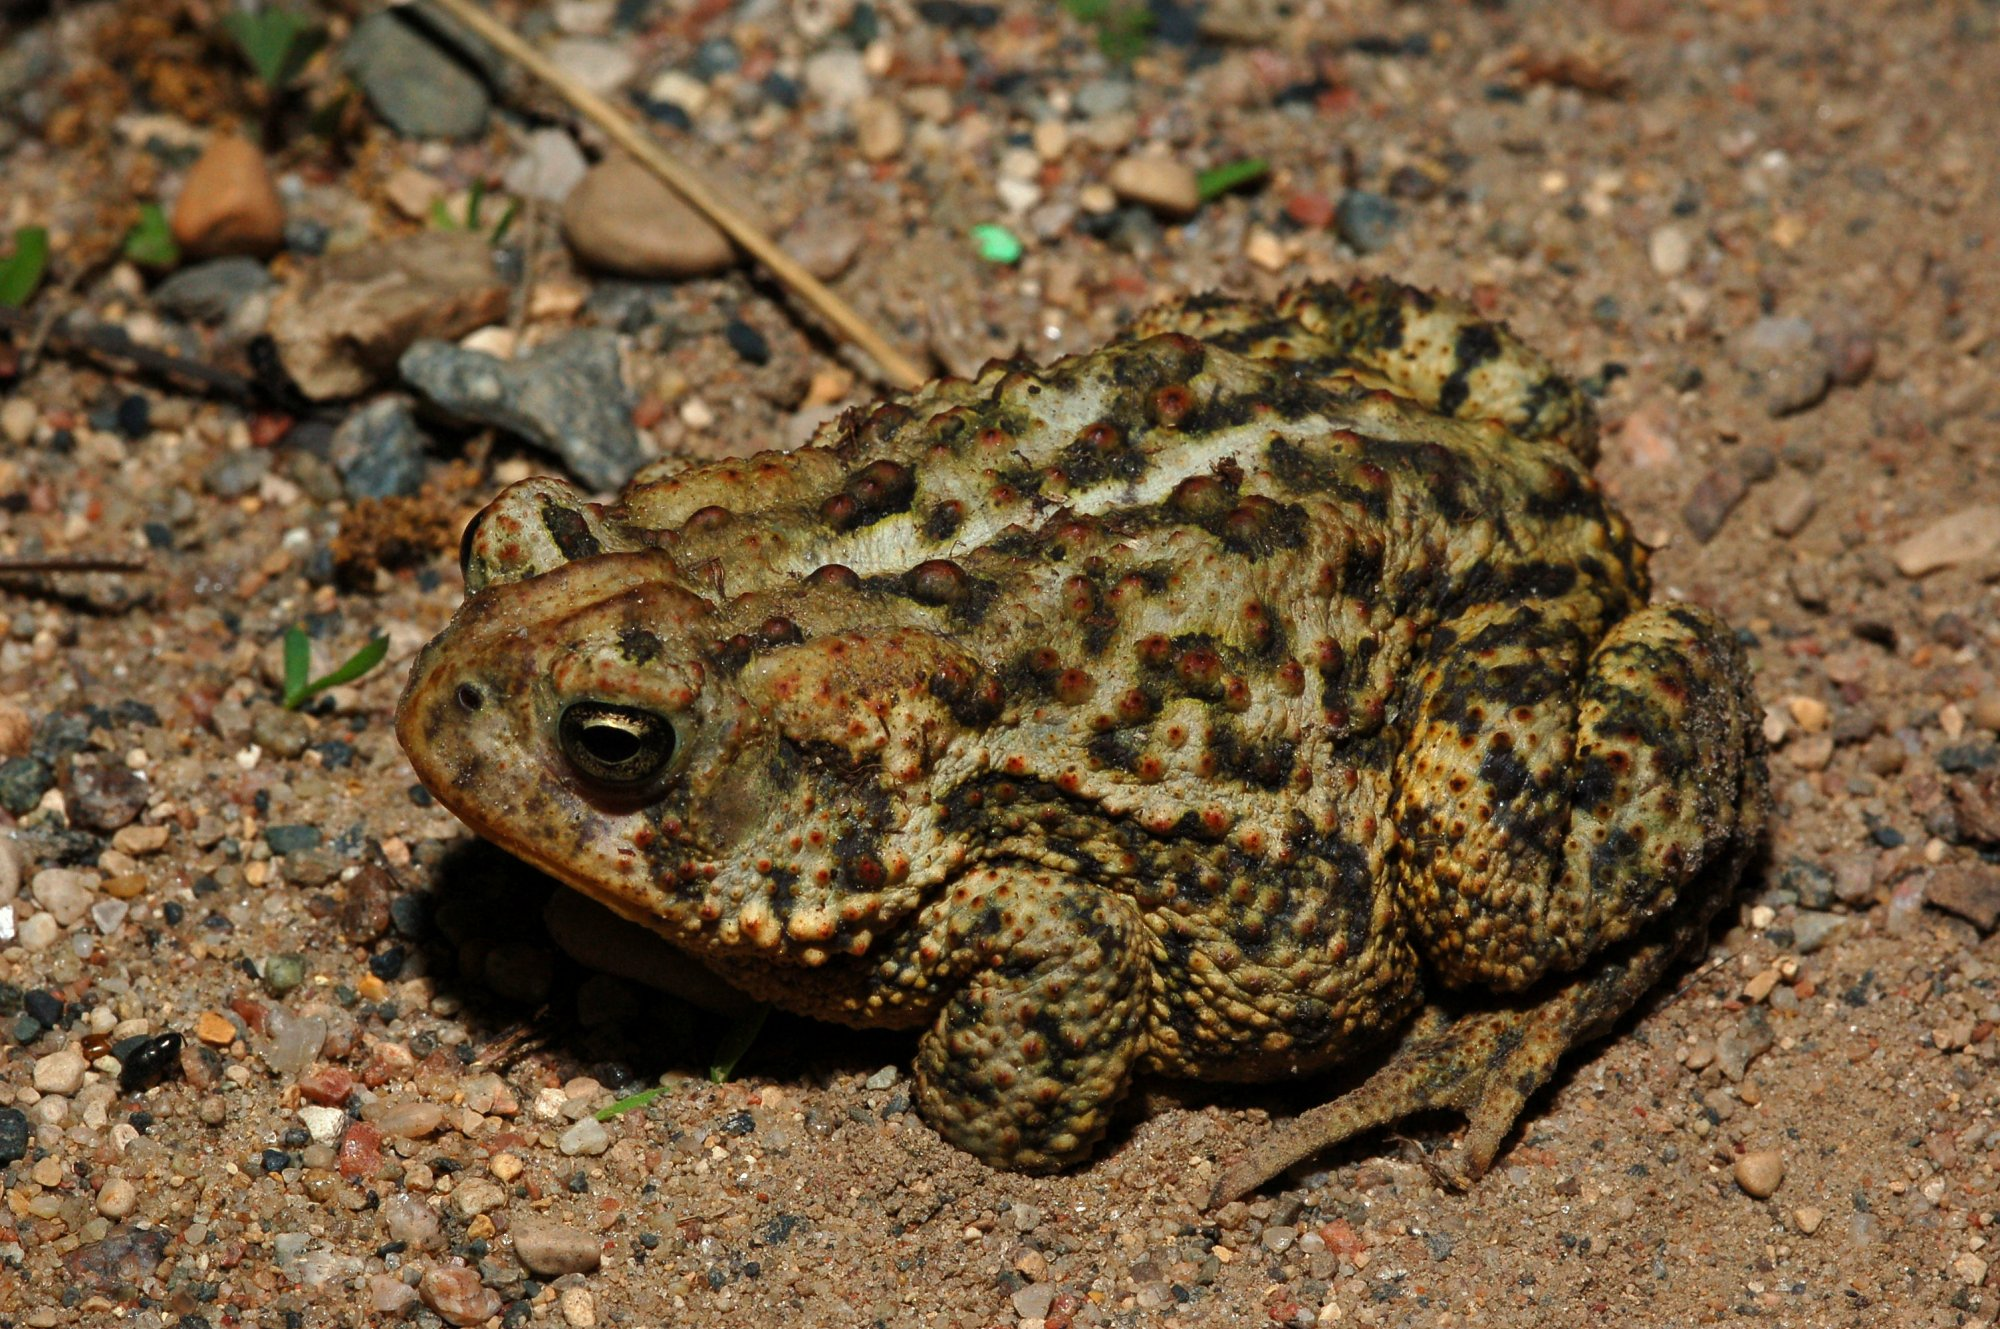 Spanish Porn Star Arrested After Man Dies During Ritual Involving Inhaling Psychedelic Toad Venom